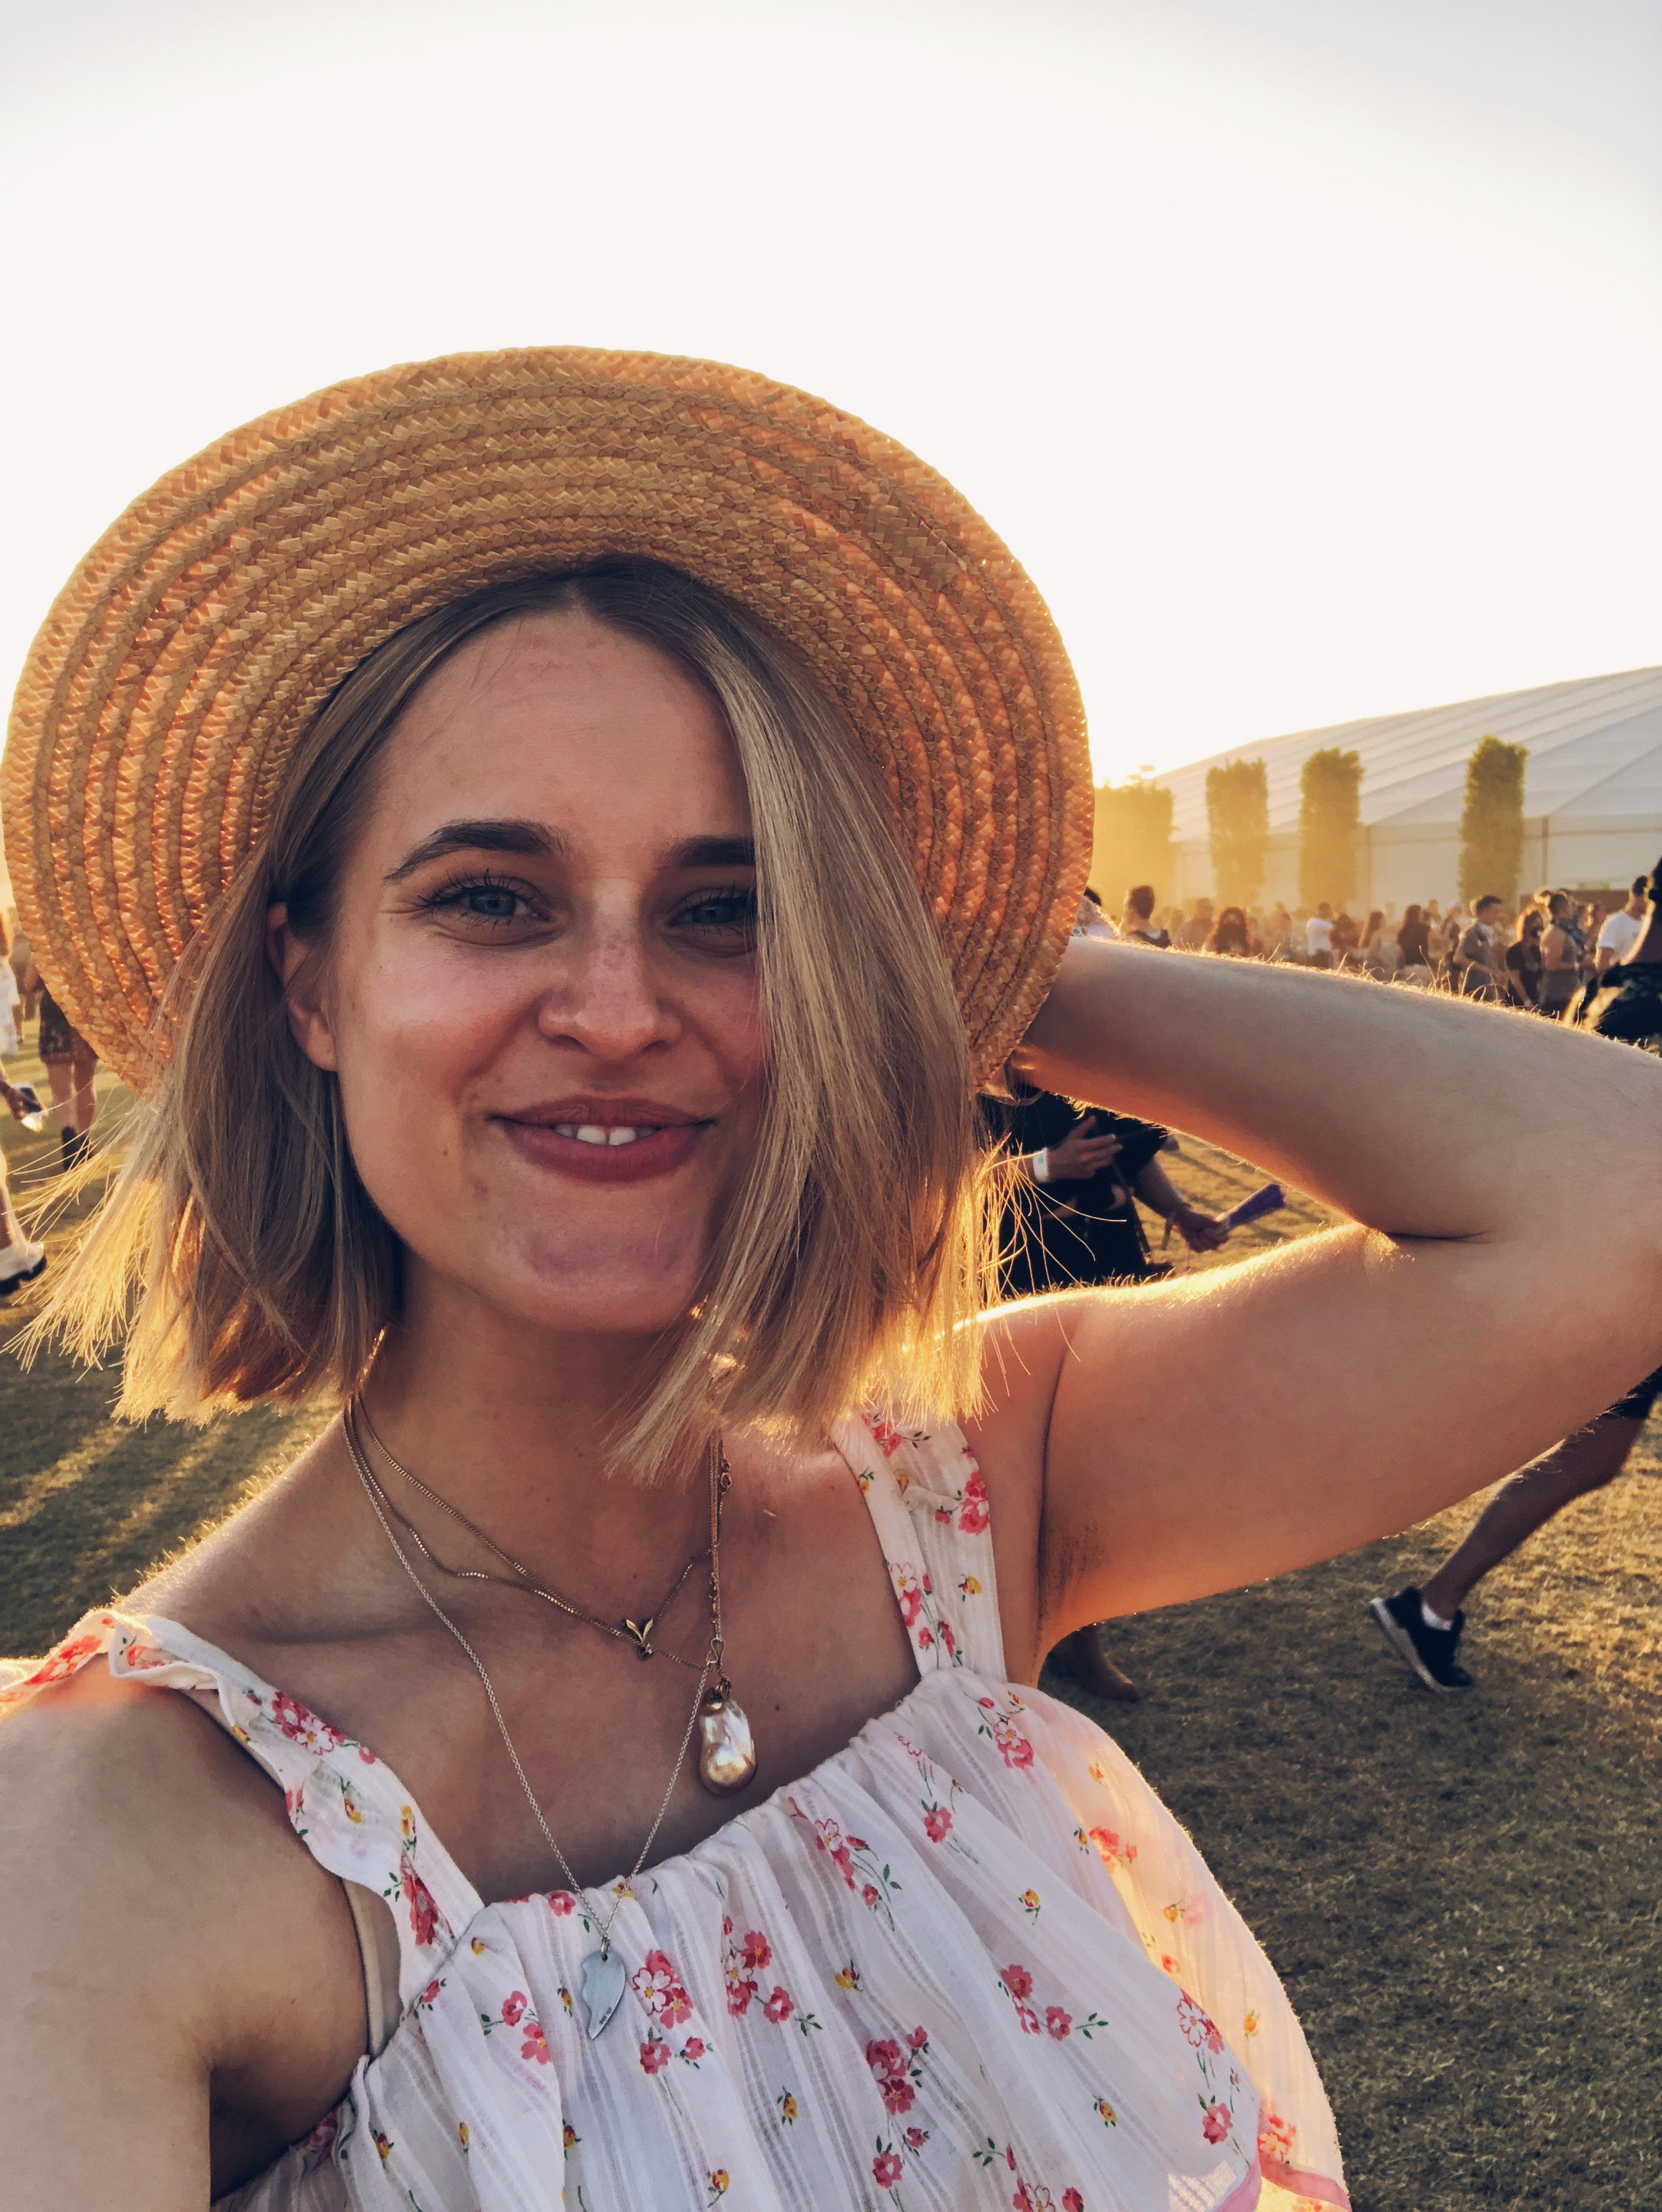 rockpaperdresses, Cathrine Widunok Wichmand, Visit California, Coachella, San Diego guide, LA